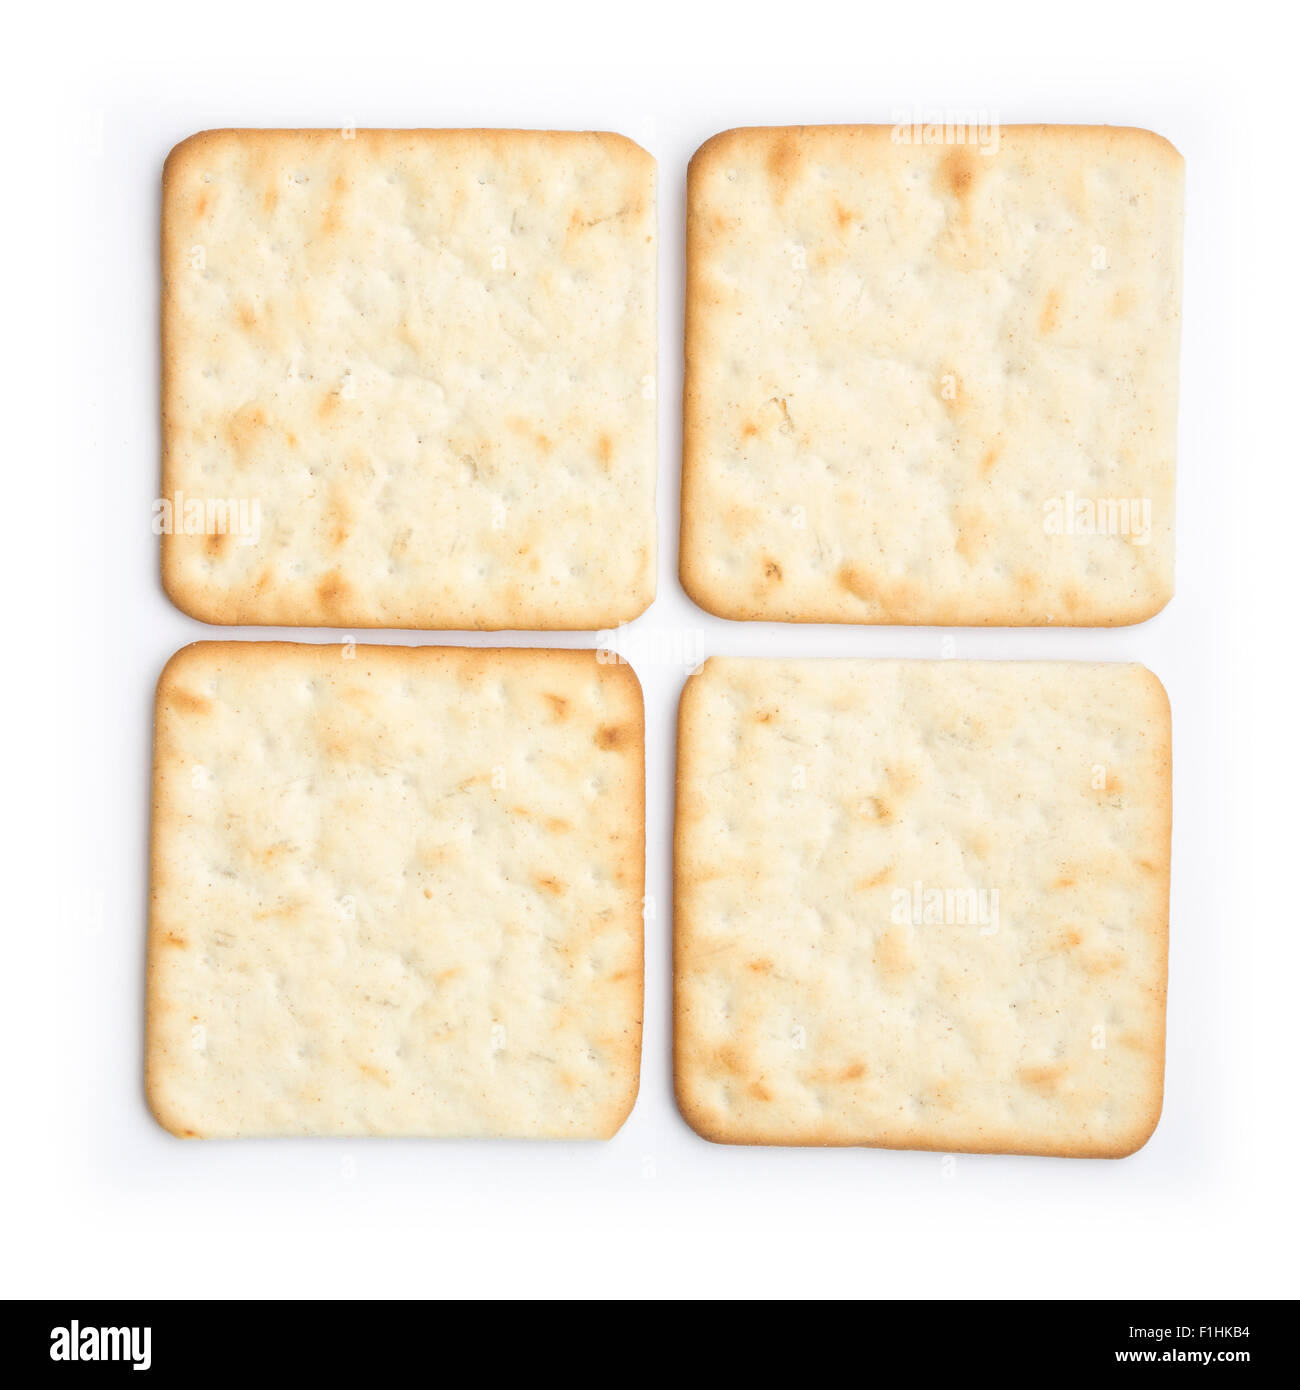 Cheese crackers or biscuits isolated on a white background. - Stock Image